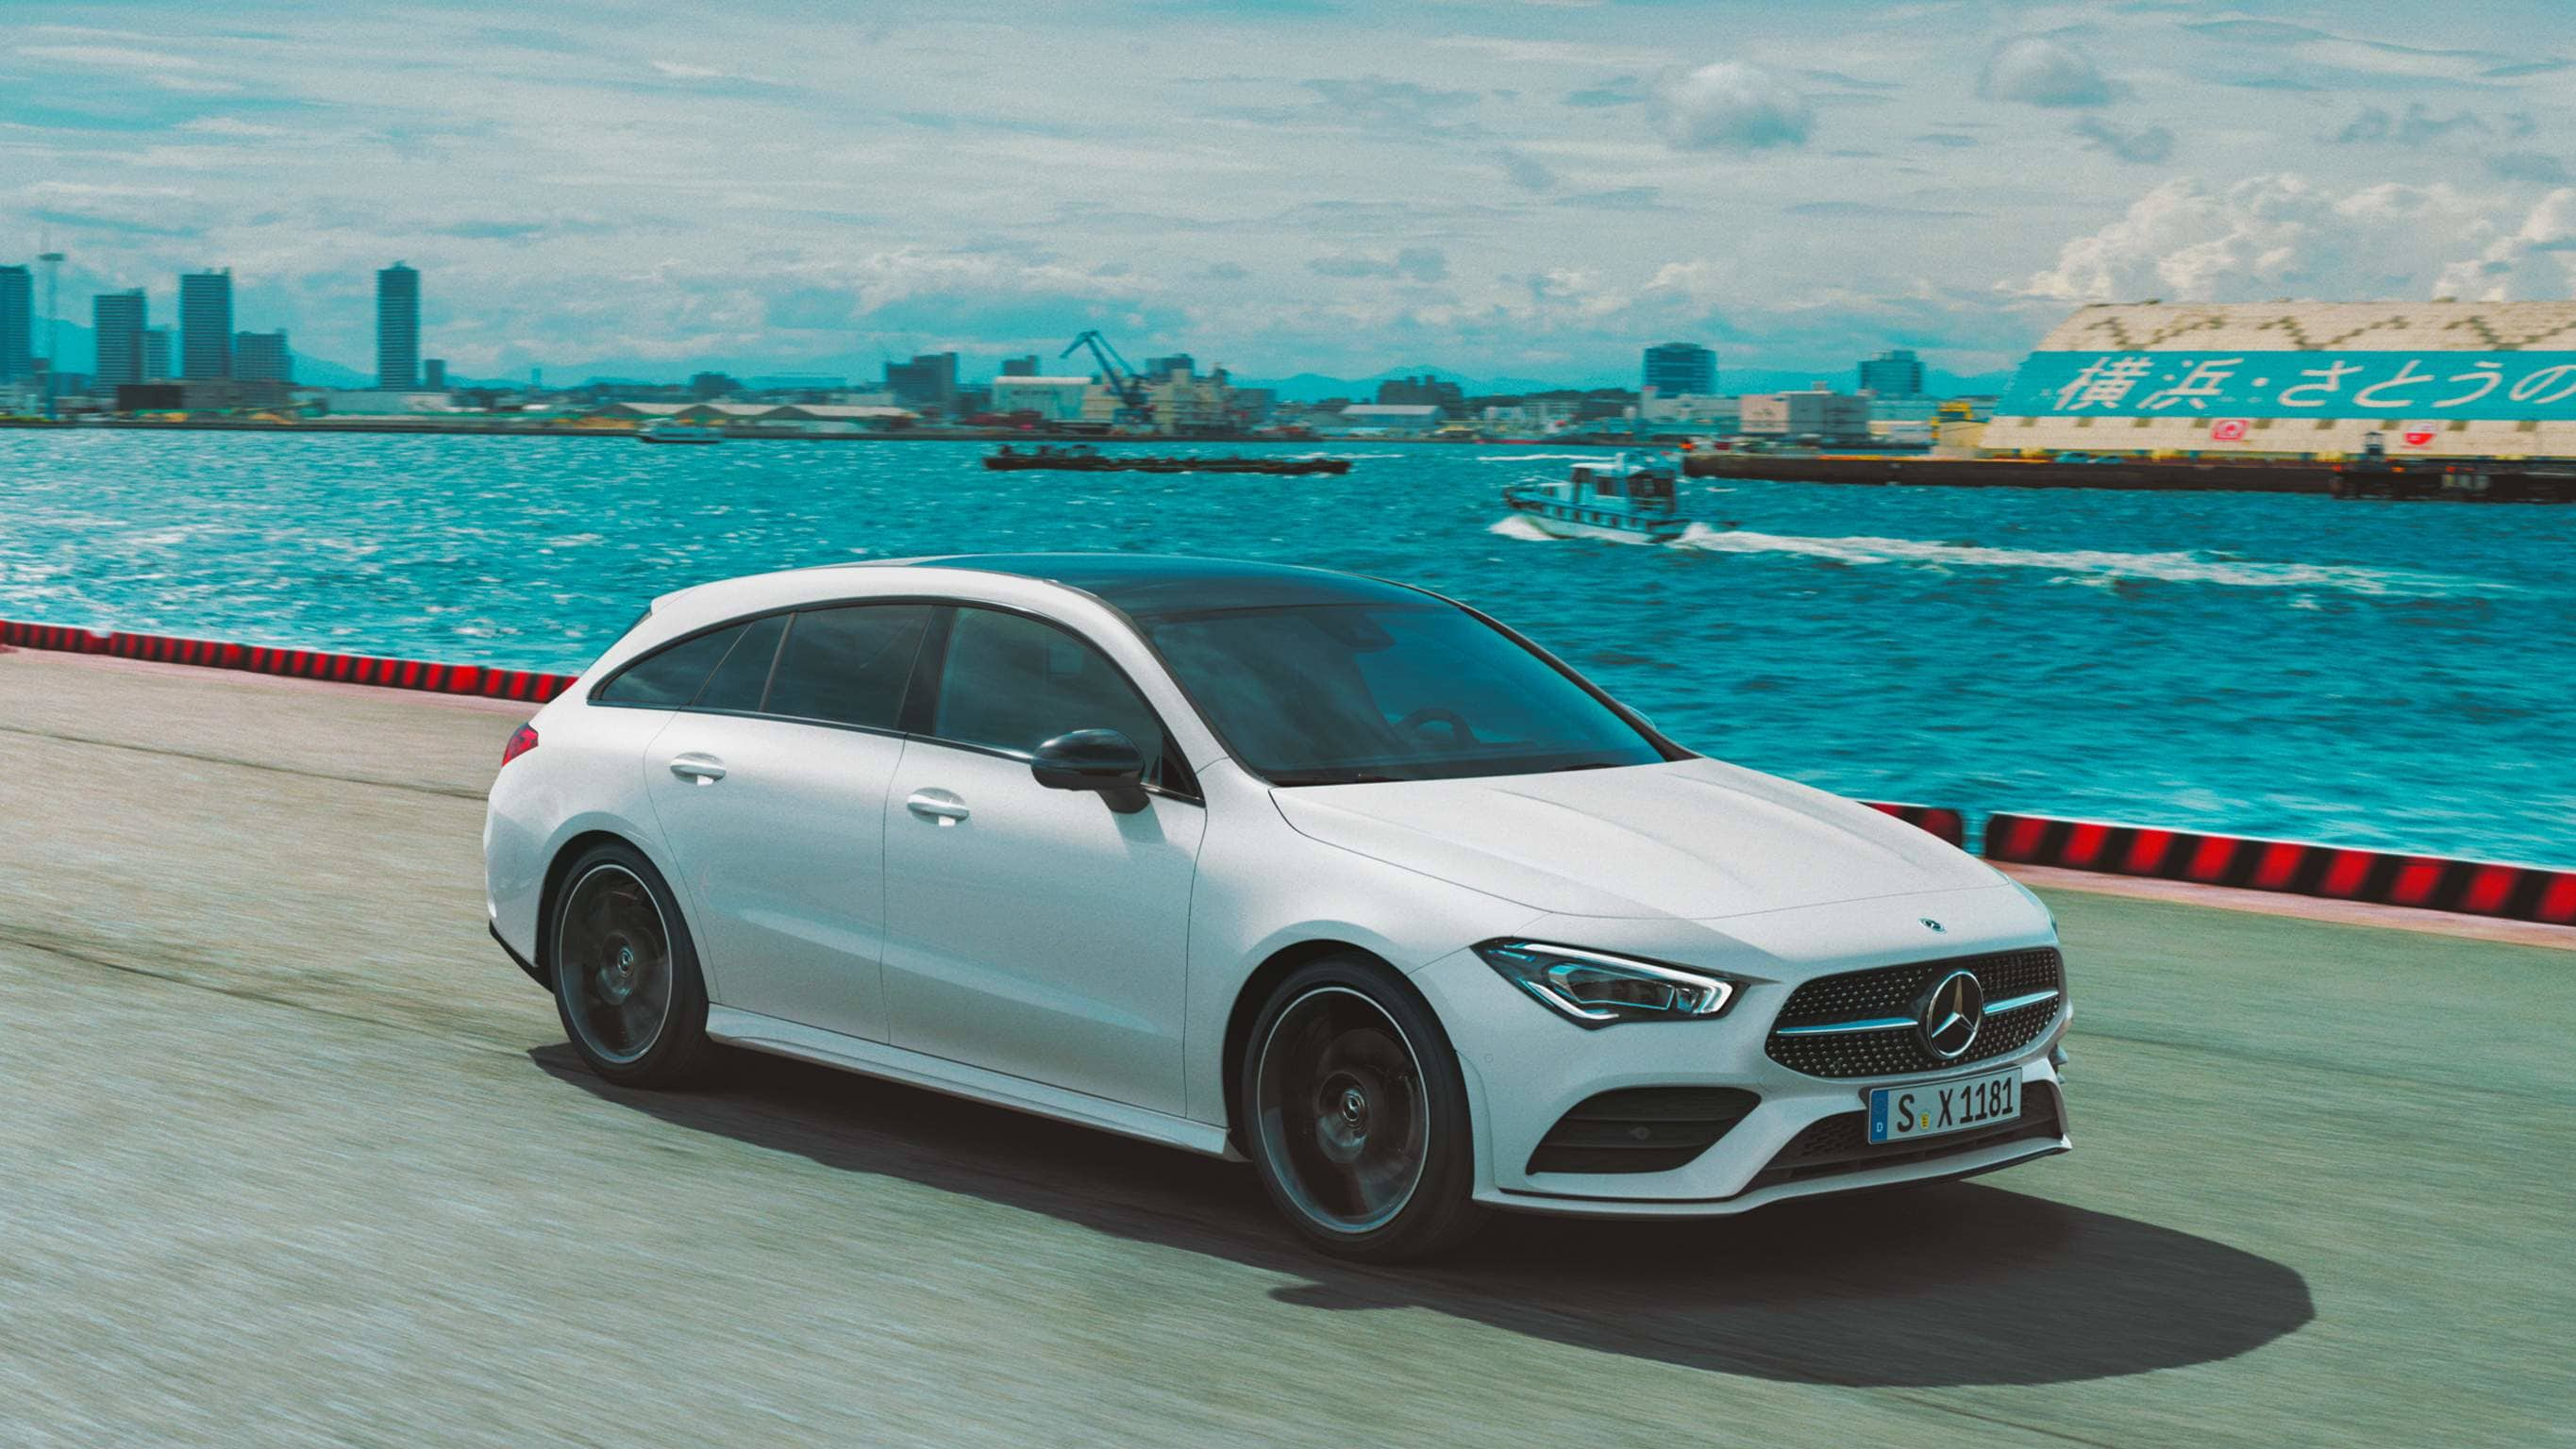 Новый автомобиль Mercedes-Benz CLA Shooting Brake решетка радиатора